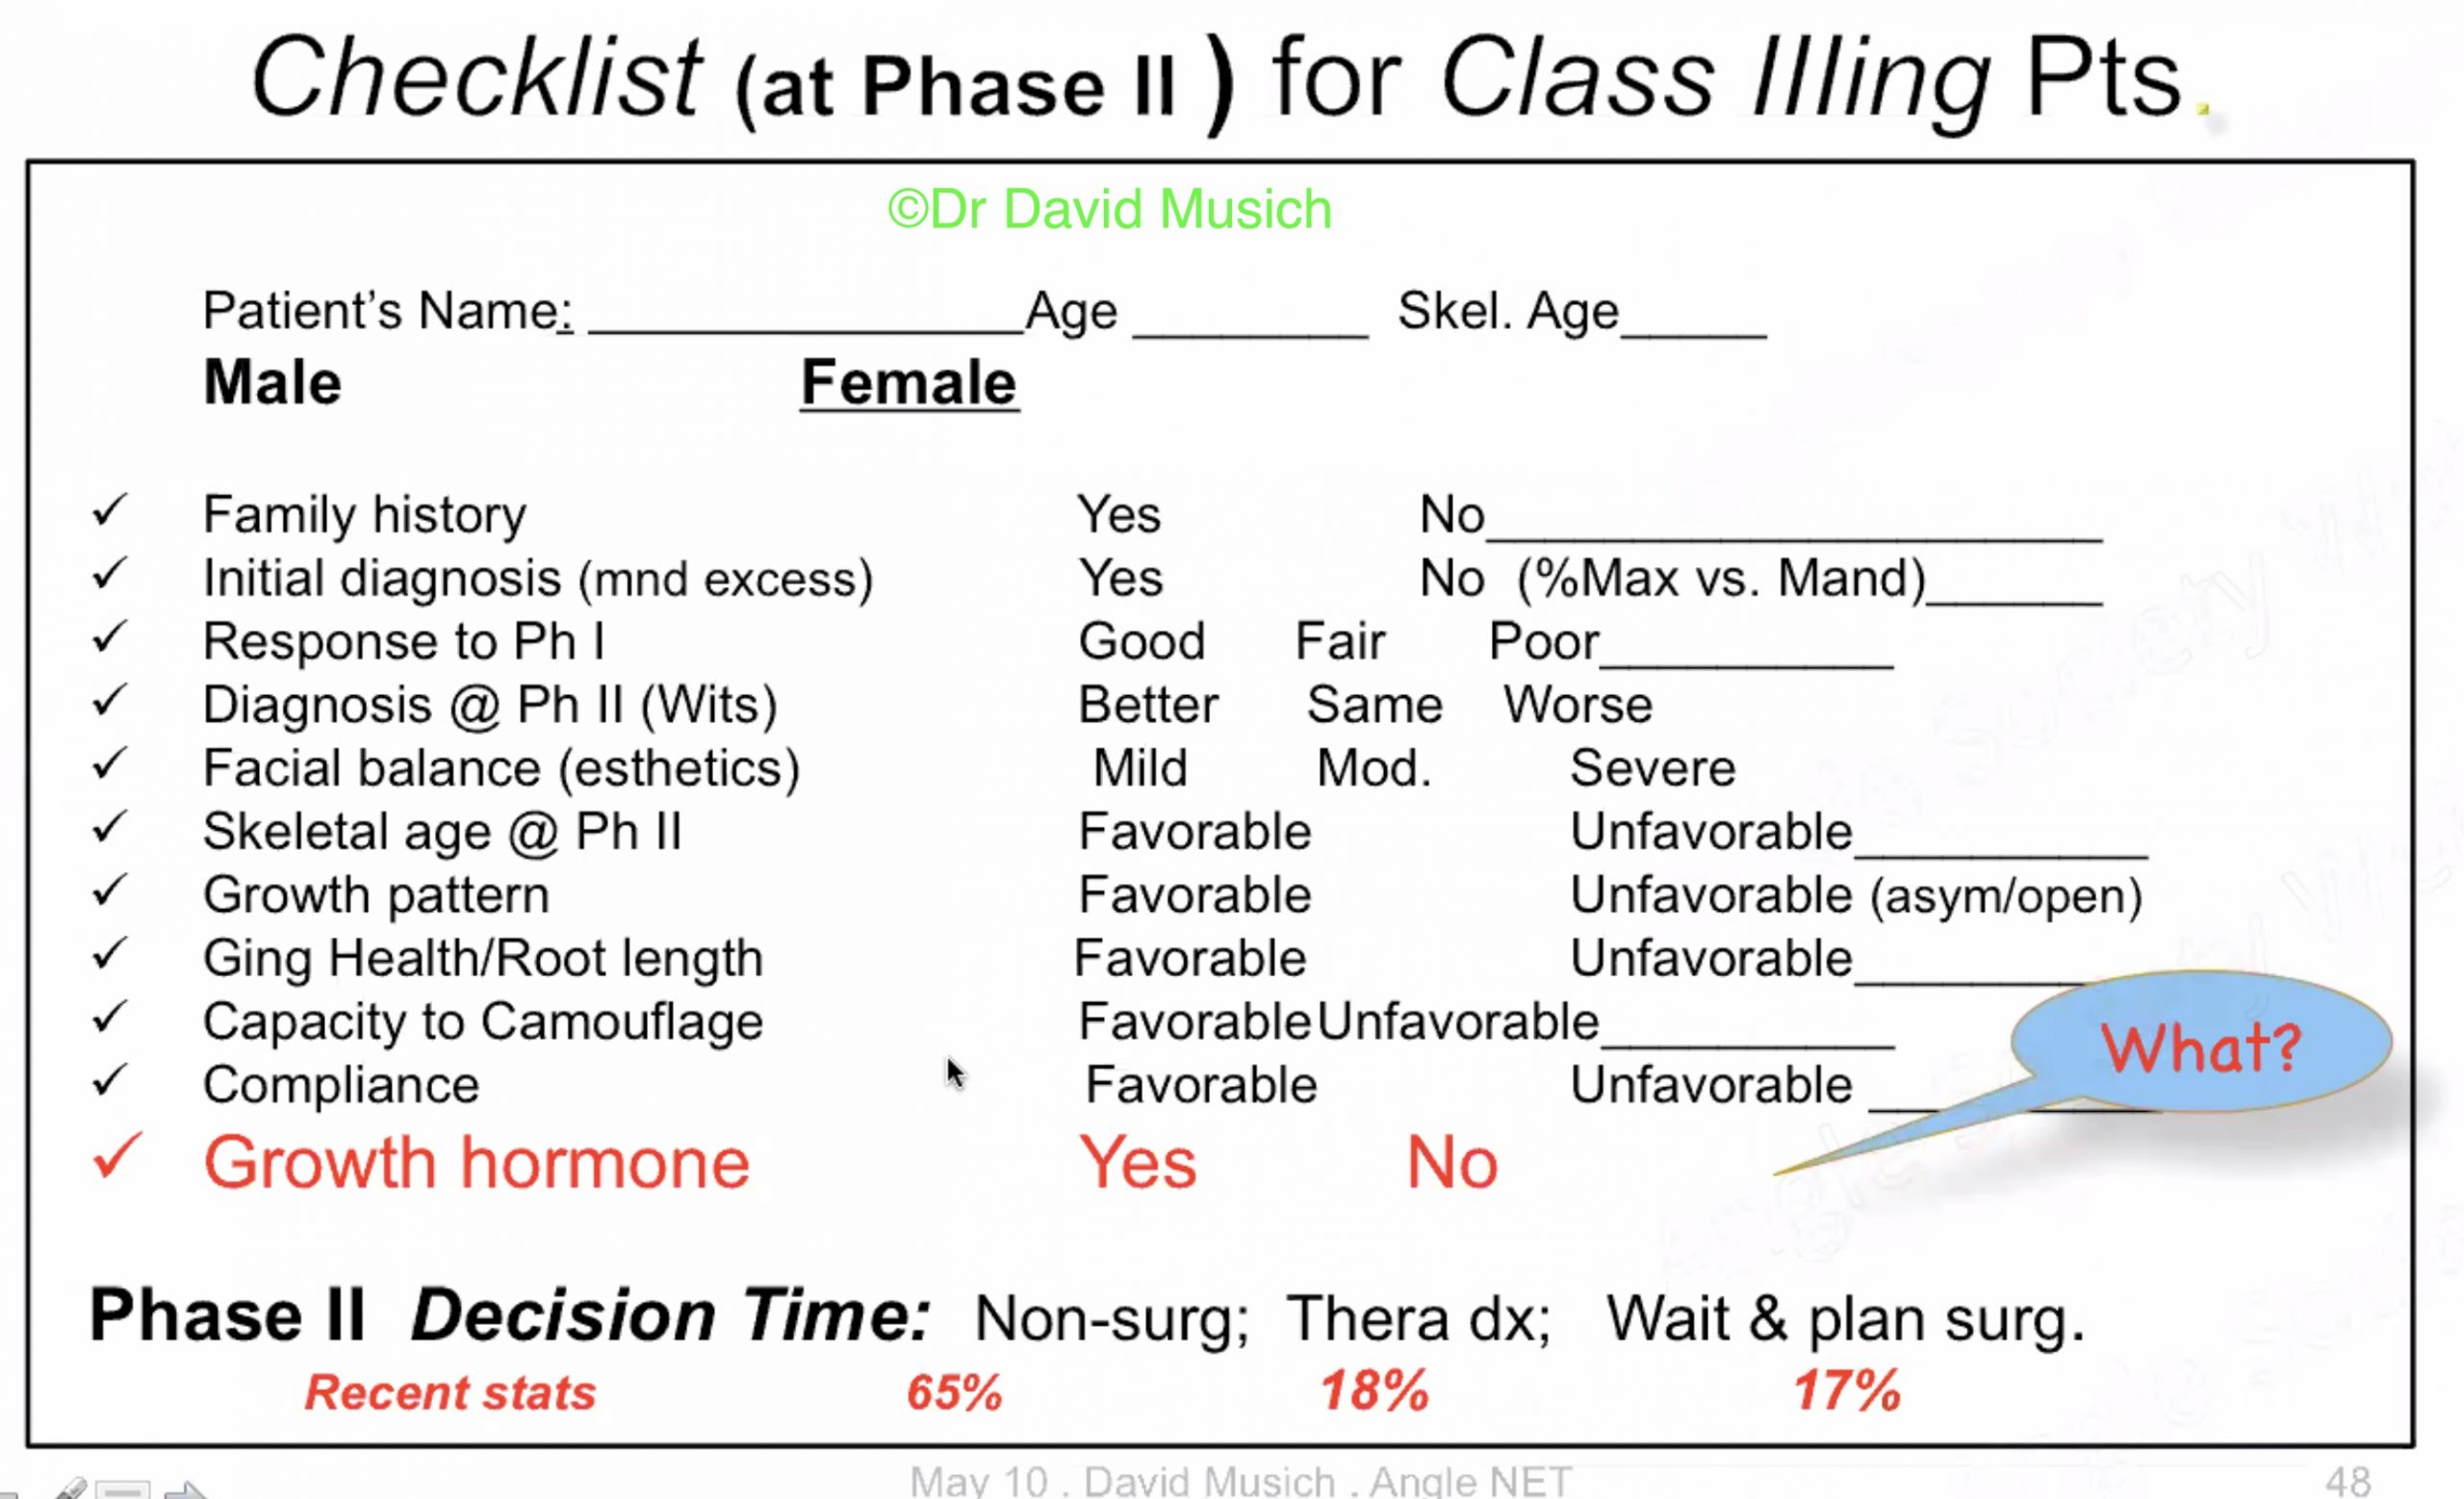 Checklist at phase II for class III patients